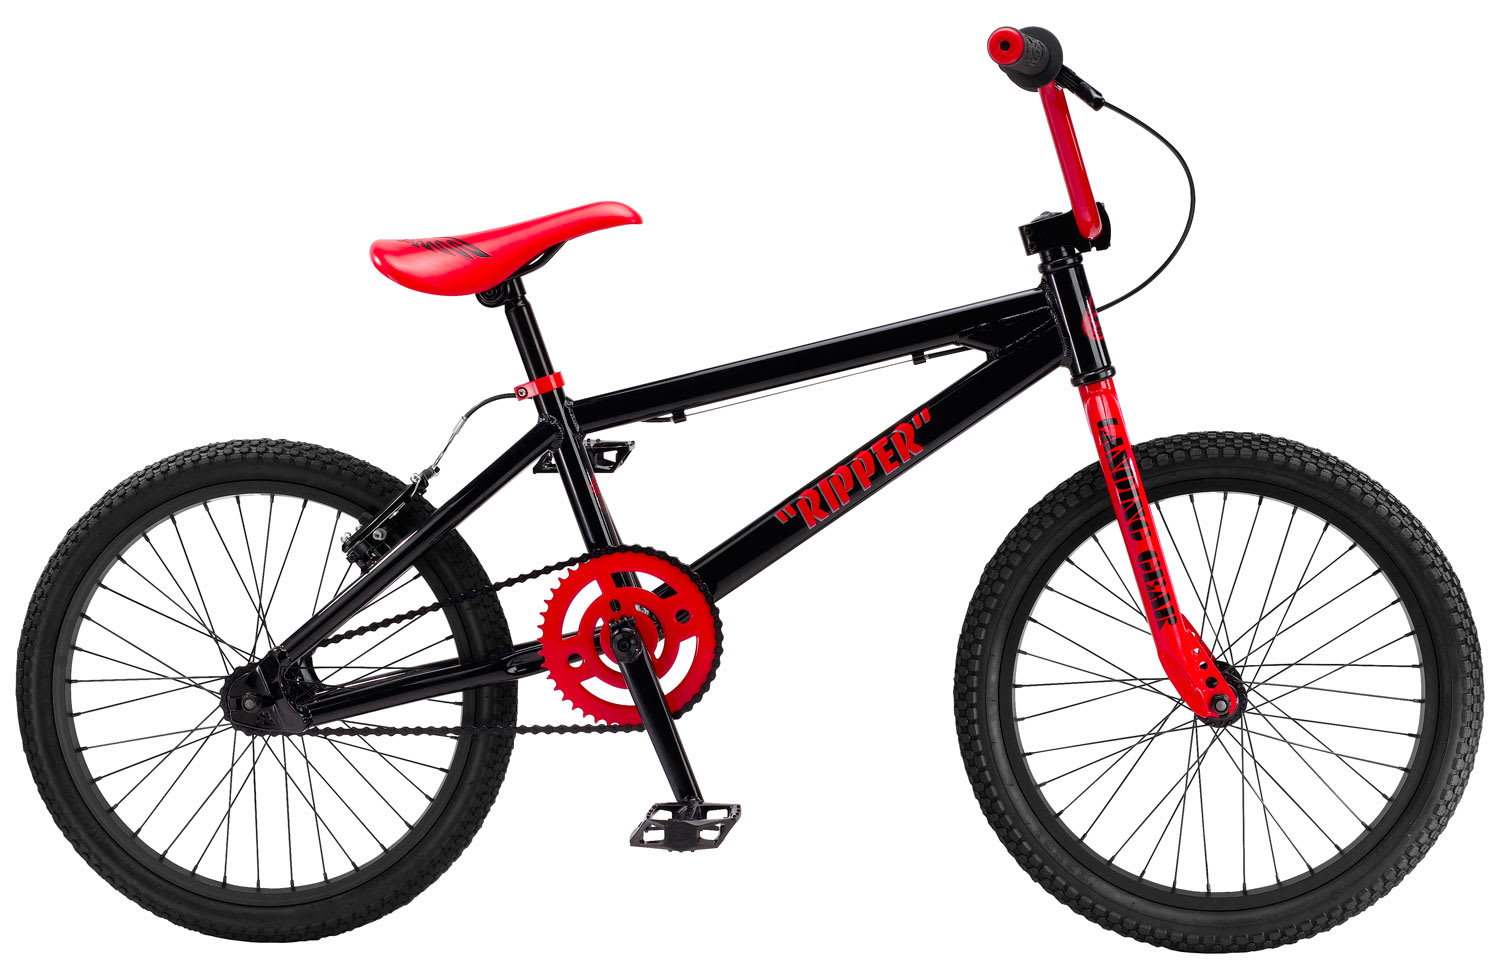 Bikes For Sale At Walmart quot Bikes Walmart quot keyword